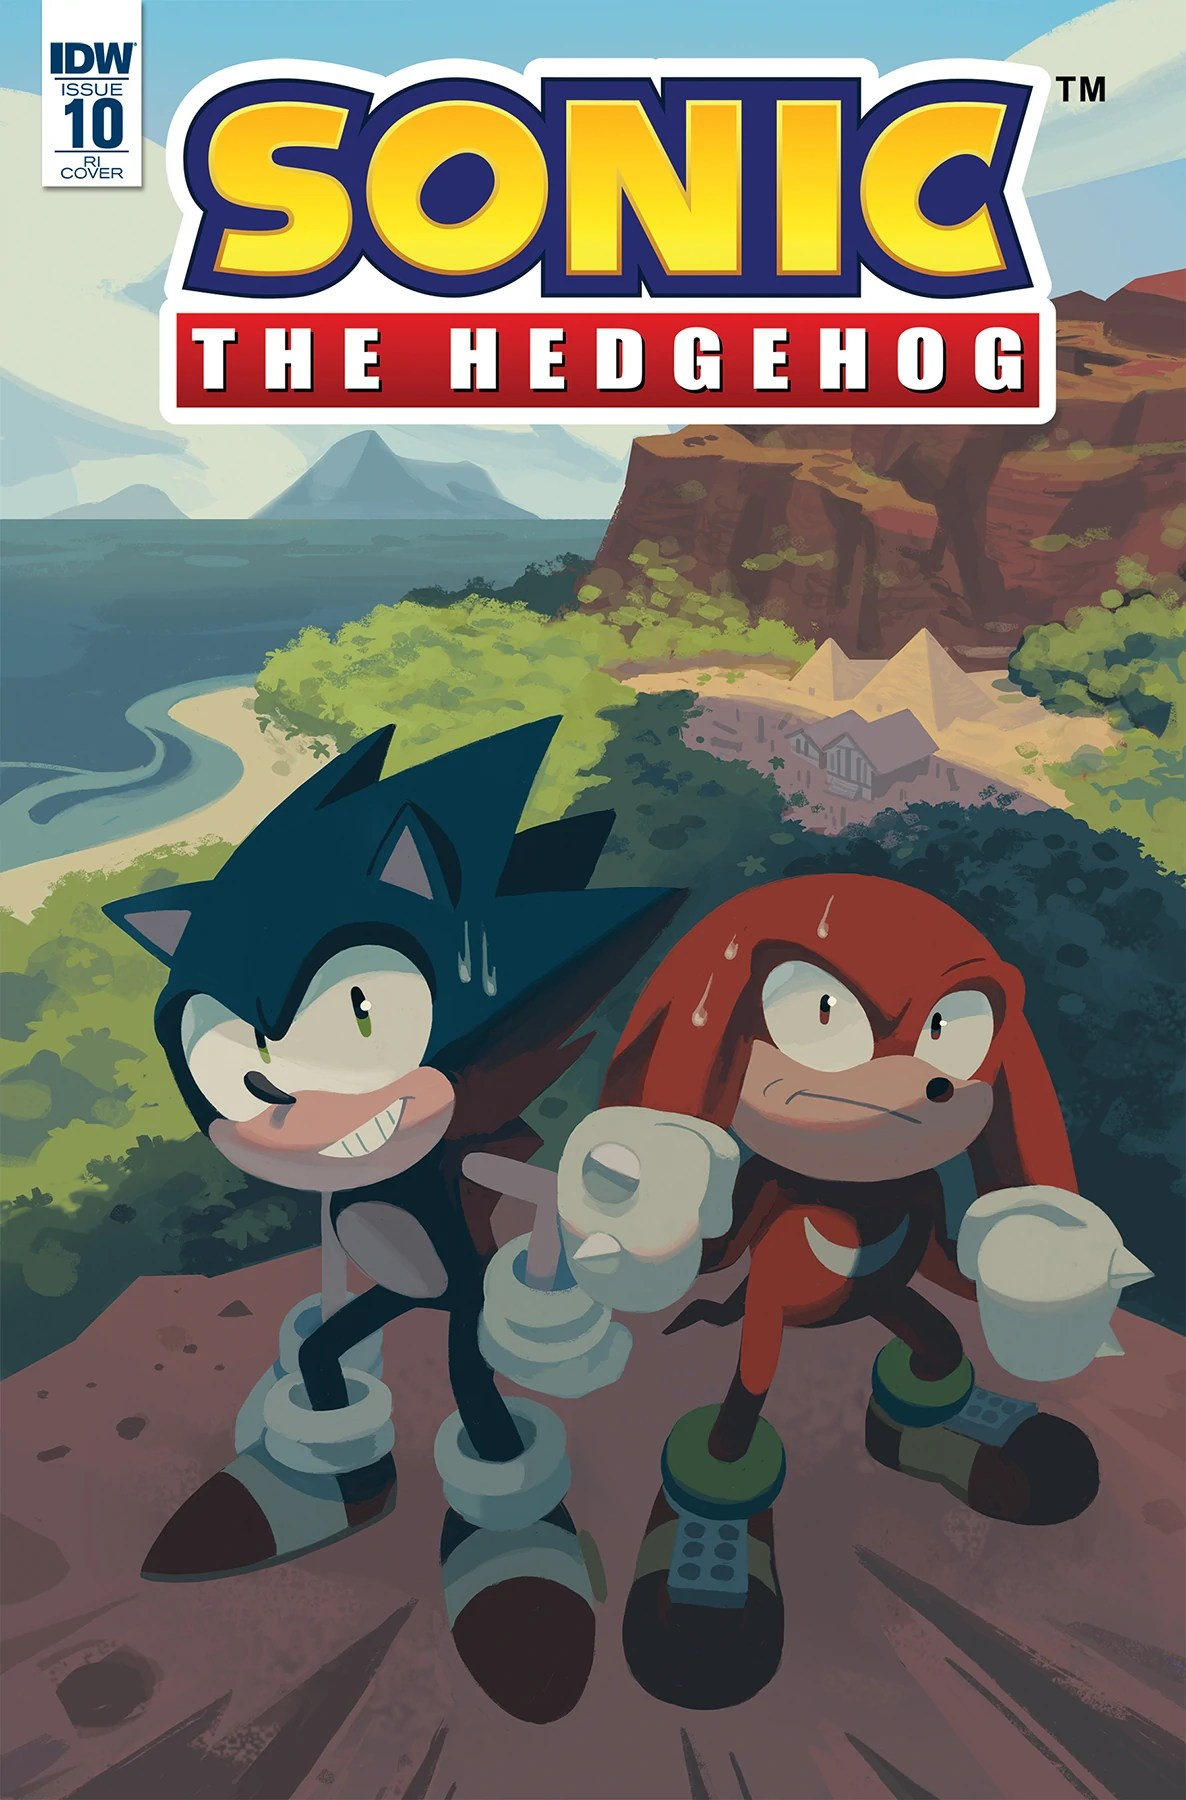 [idw-sonic minirant] reuse of art and lazy covers by ...